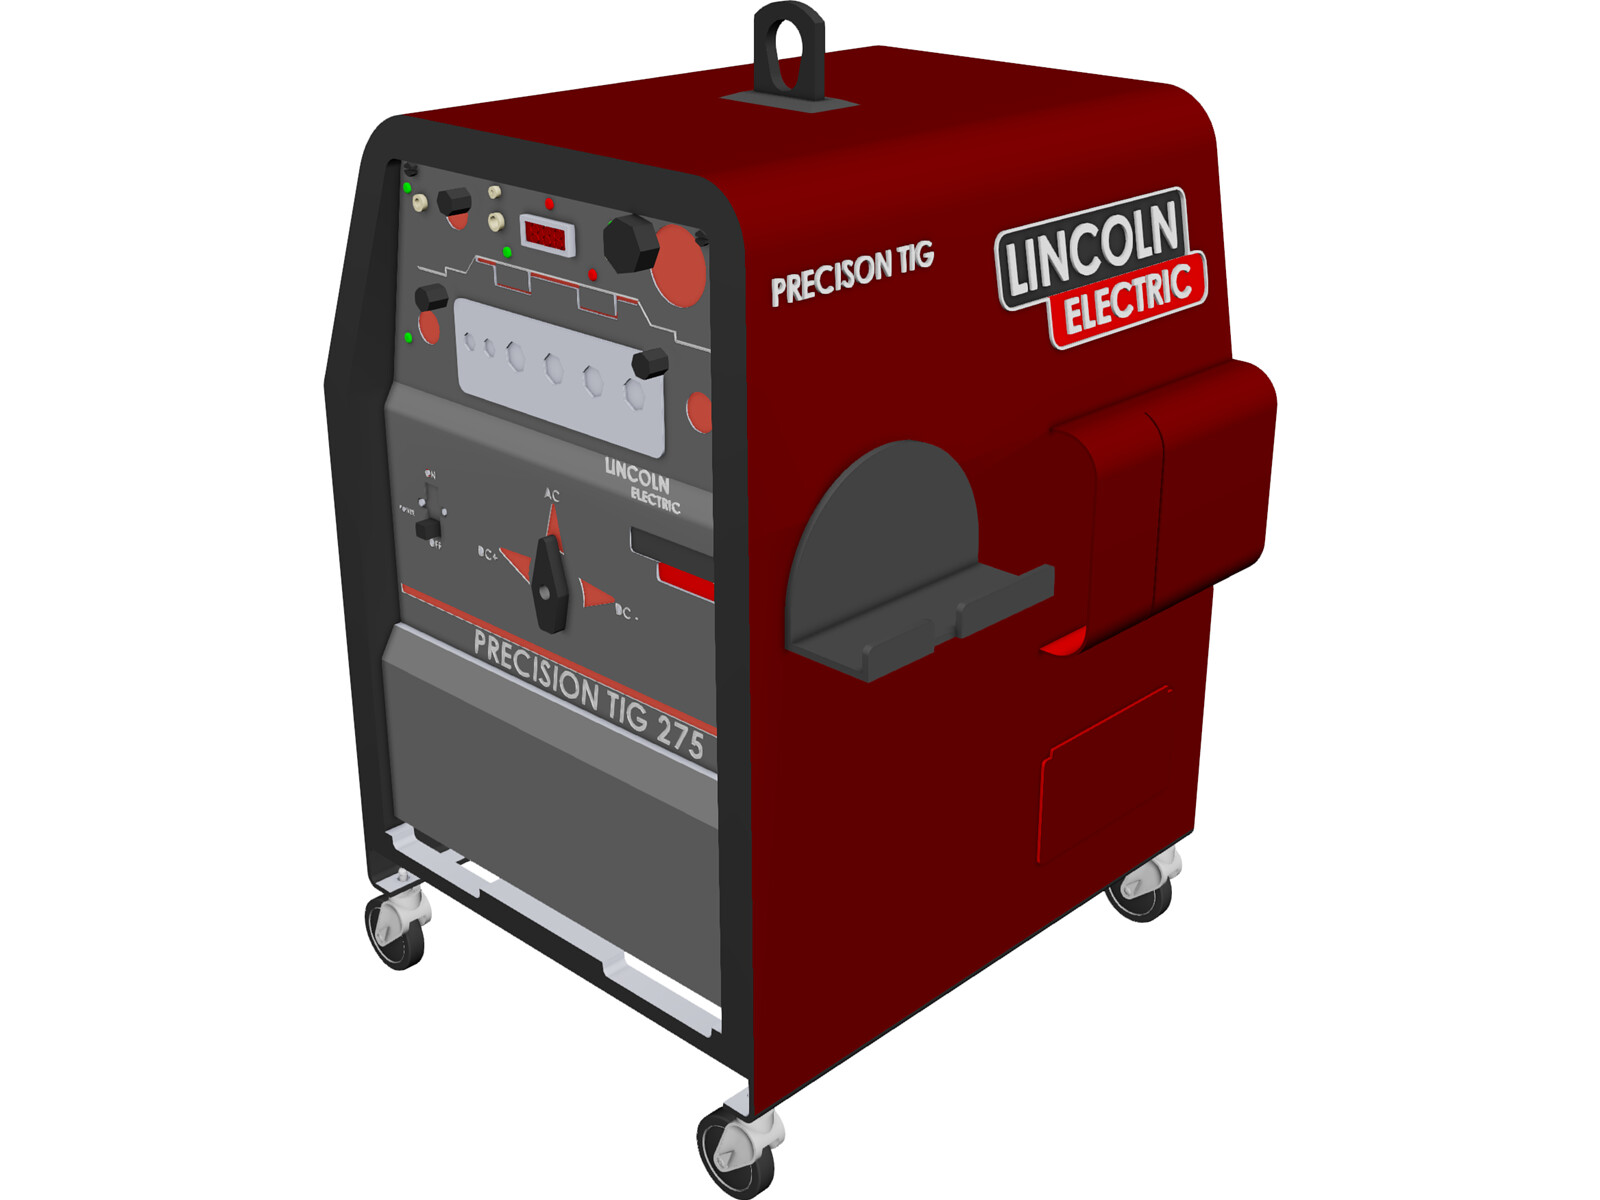 welding machine lincoln electric precision tig 275 3d model